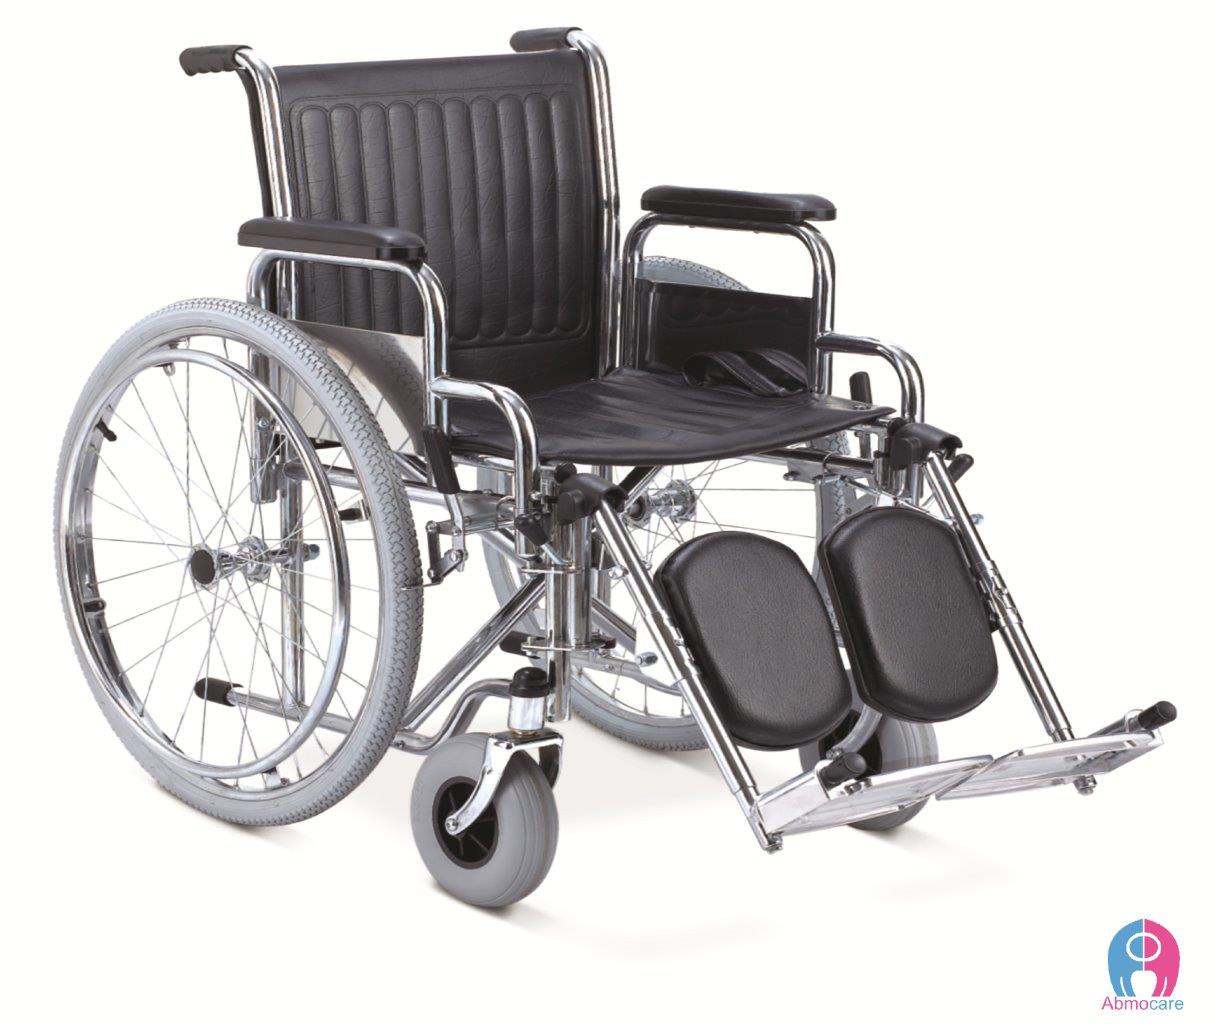 Sensational Fastcure Standard Wheel Chair Fc 902C Mobility Home Inzonedesignstudio Interior Chair Design Inzonedesignstudiocom